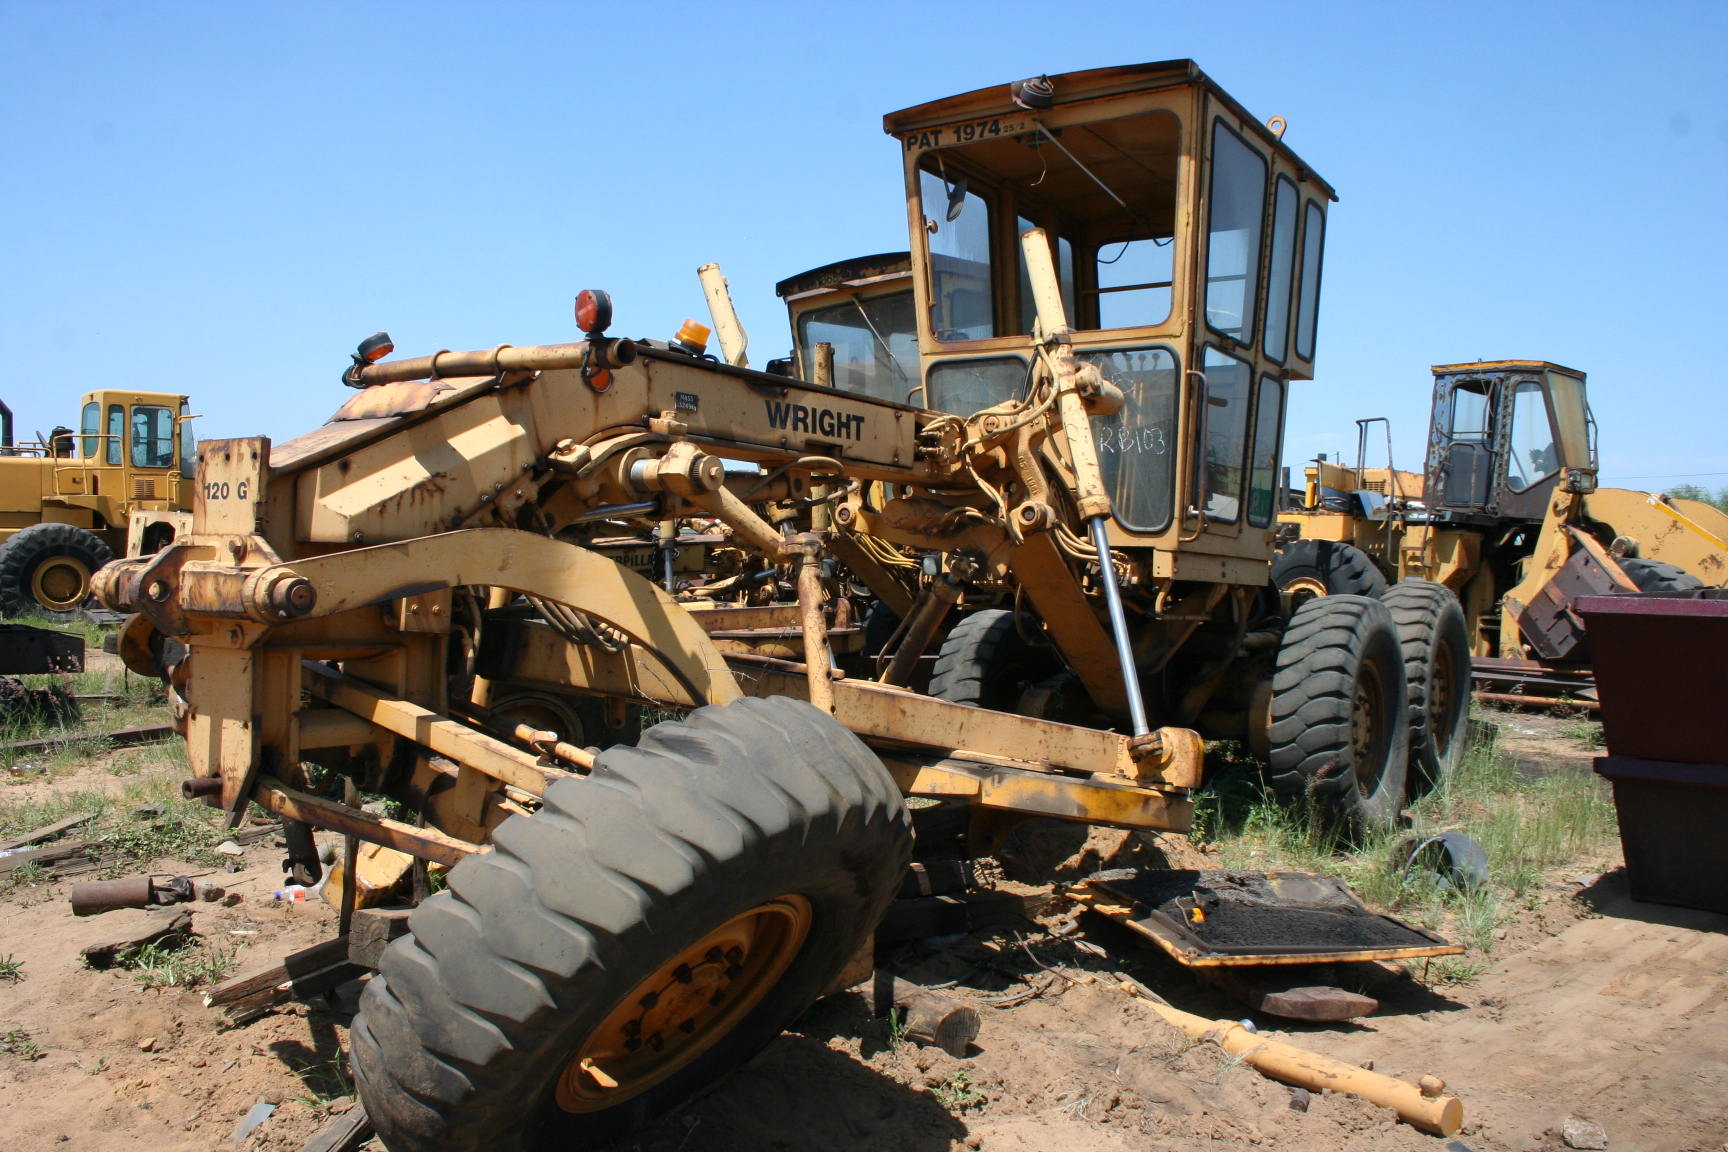 CAT 120G (Stripping For Spares)